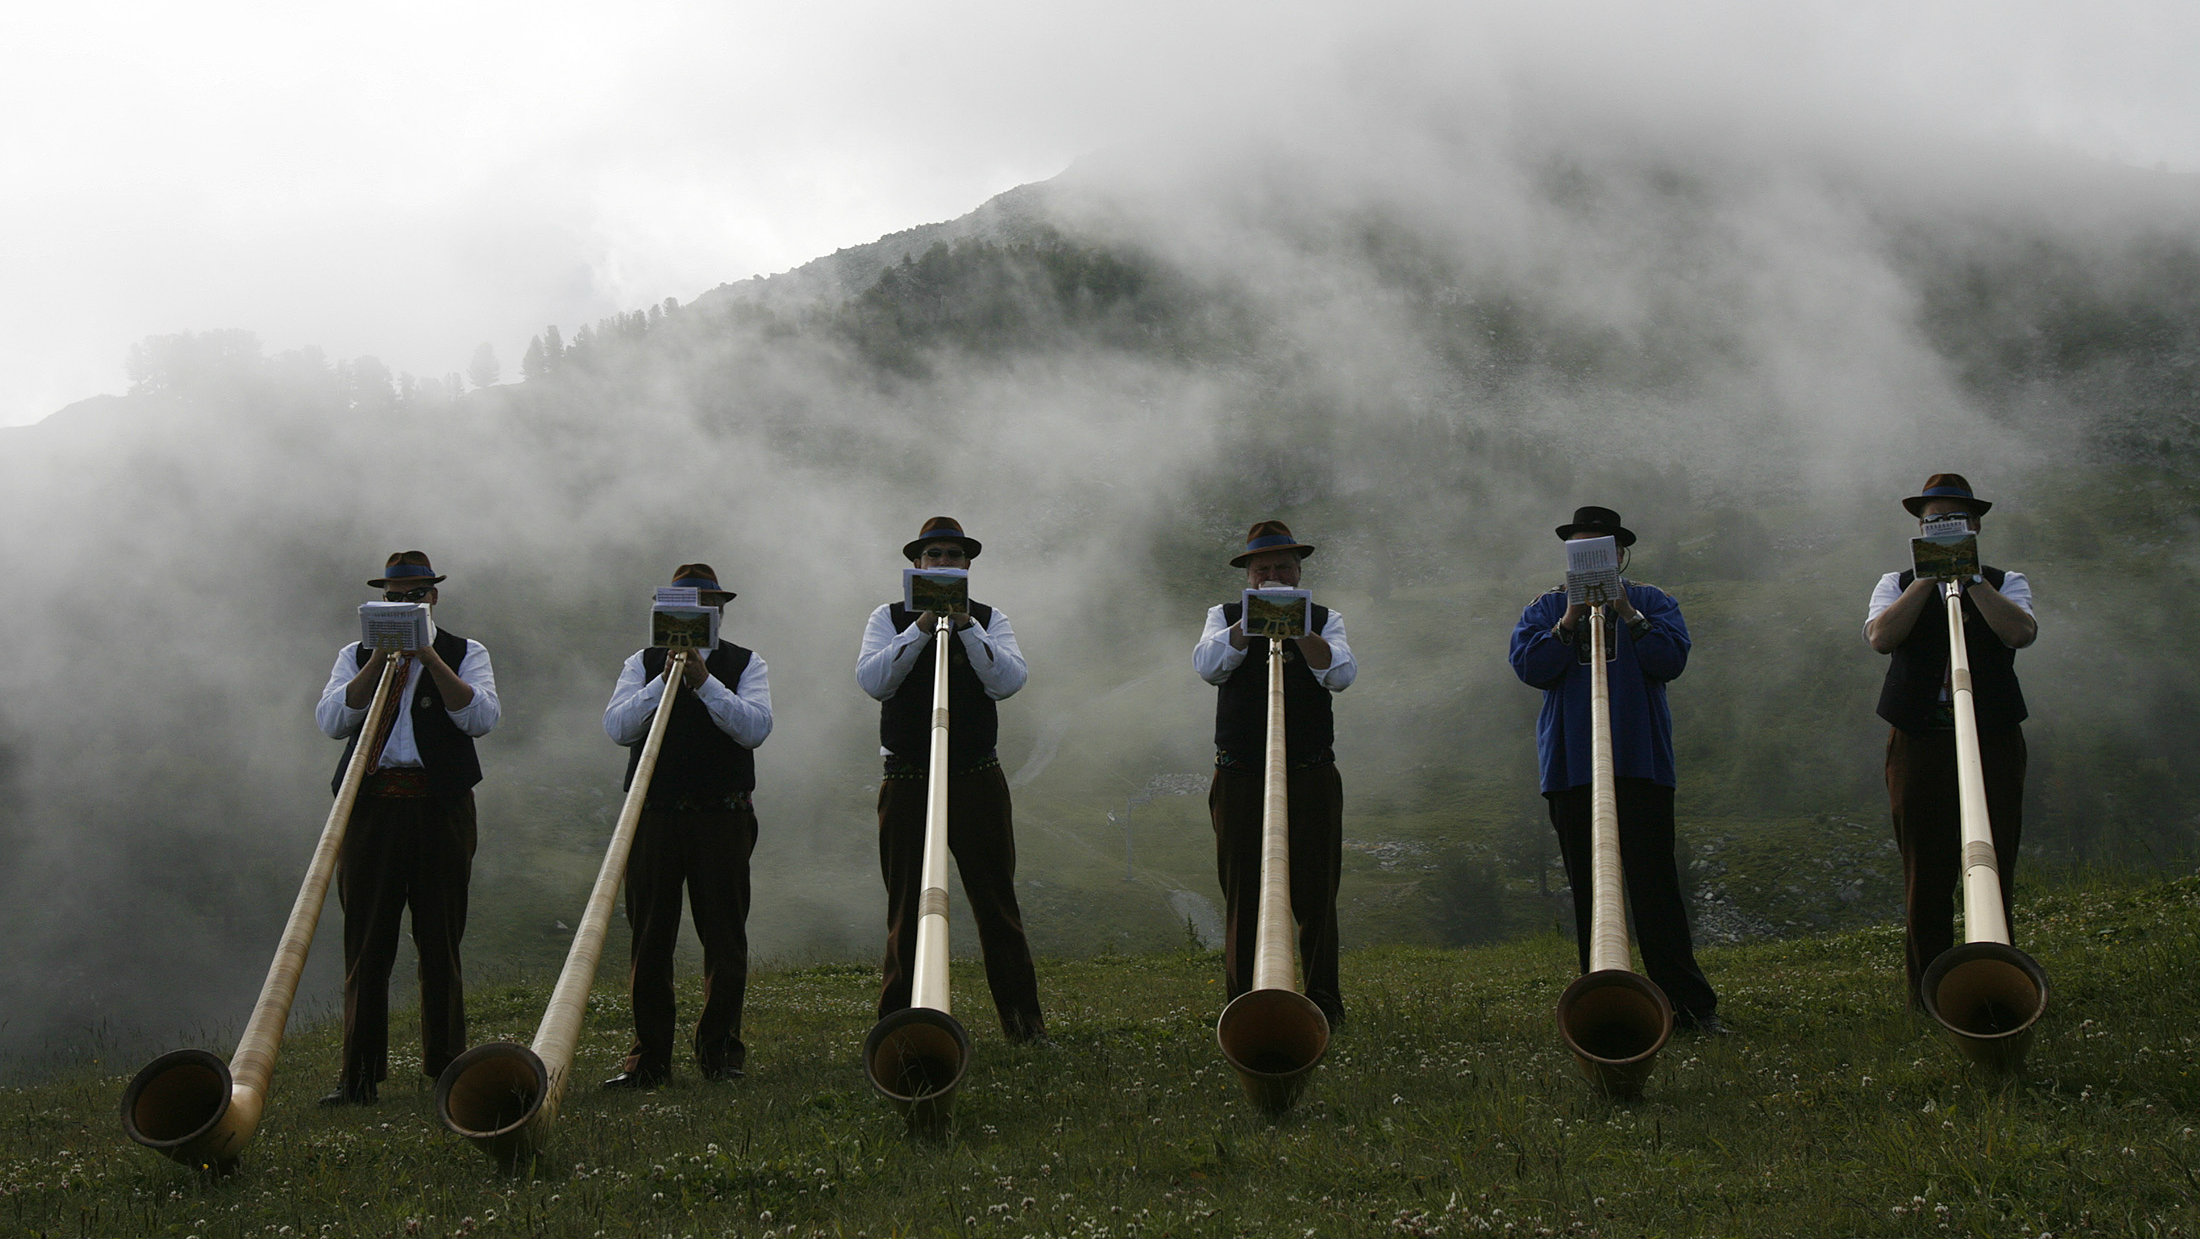 Alphorn blowers practice early morning before the International Alphorn contest on the alp Tracouet in Nendaz, southern Switzerland July 22, 2007. The annual musical contest, with 'solo', 'group' and 'best over the past year' competition categories, takes place over three days.